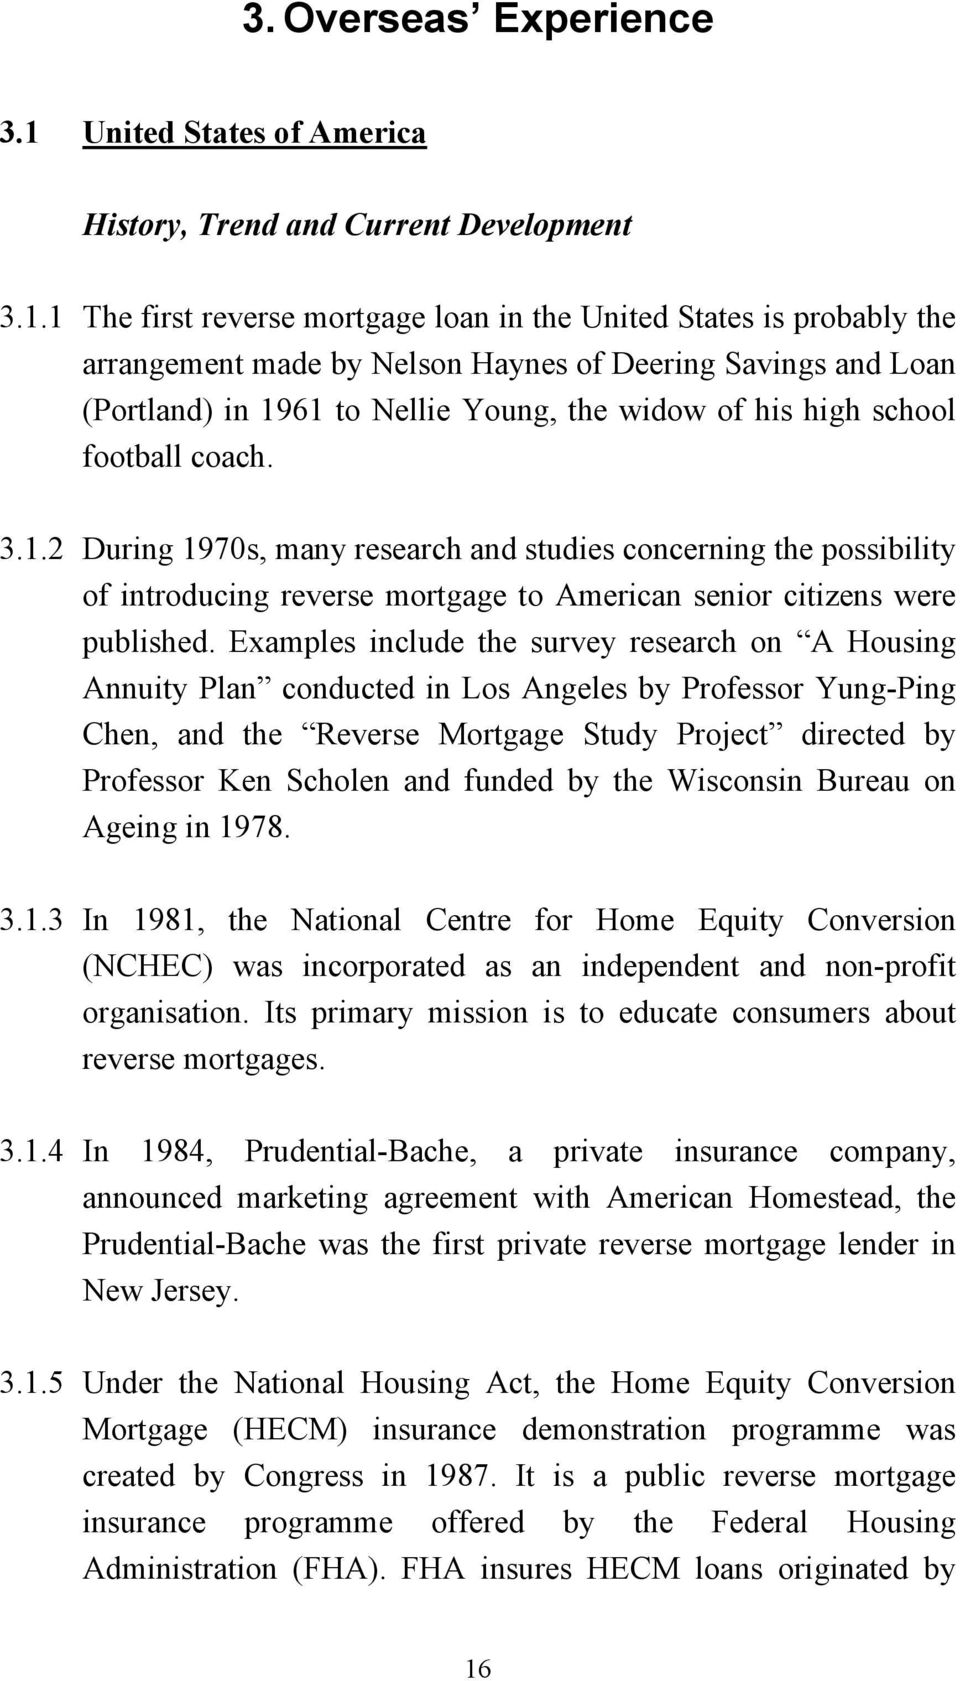 1 The first reverse mortgage loan in the United States is probably the arrangement made by Nelson Haynes of Deering Savings and Loan (Portland) in 1961 to Nellie Young, the widow of his high school